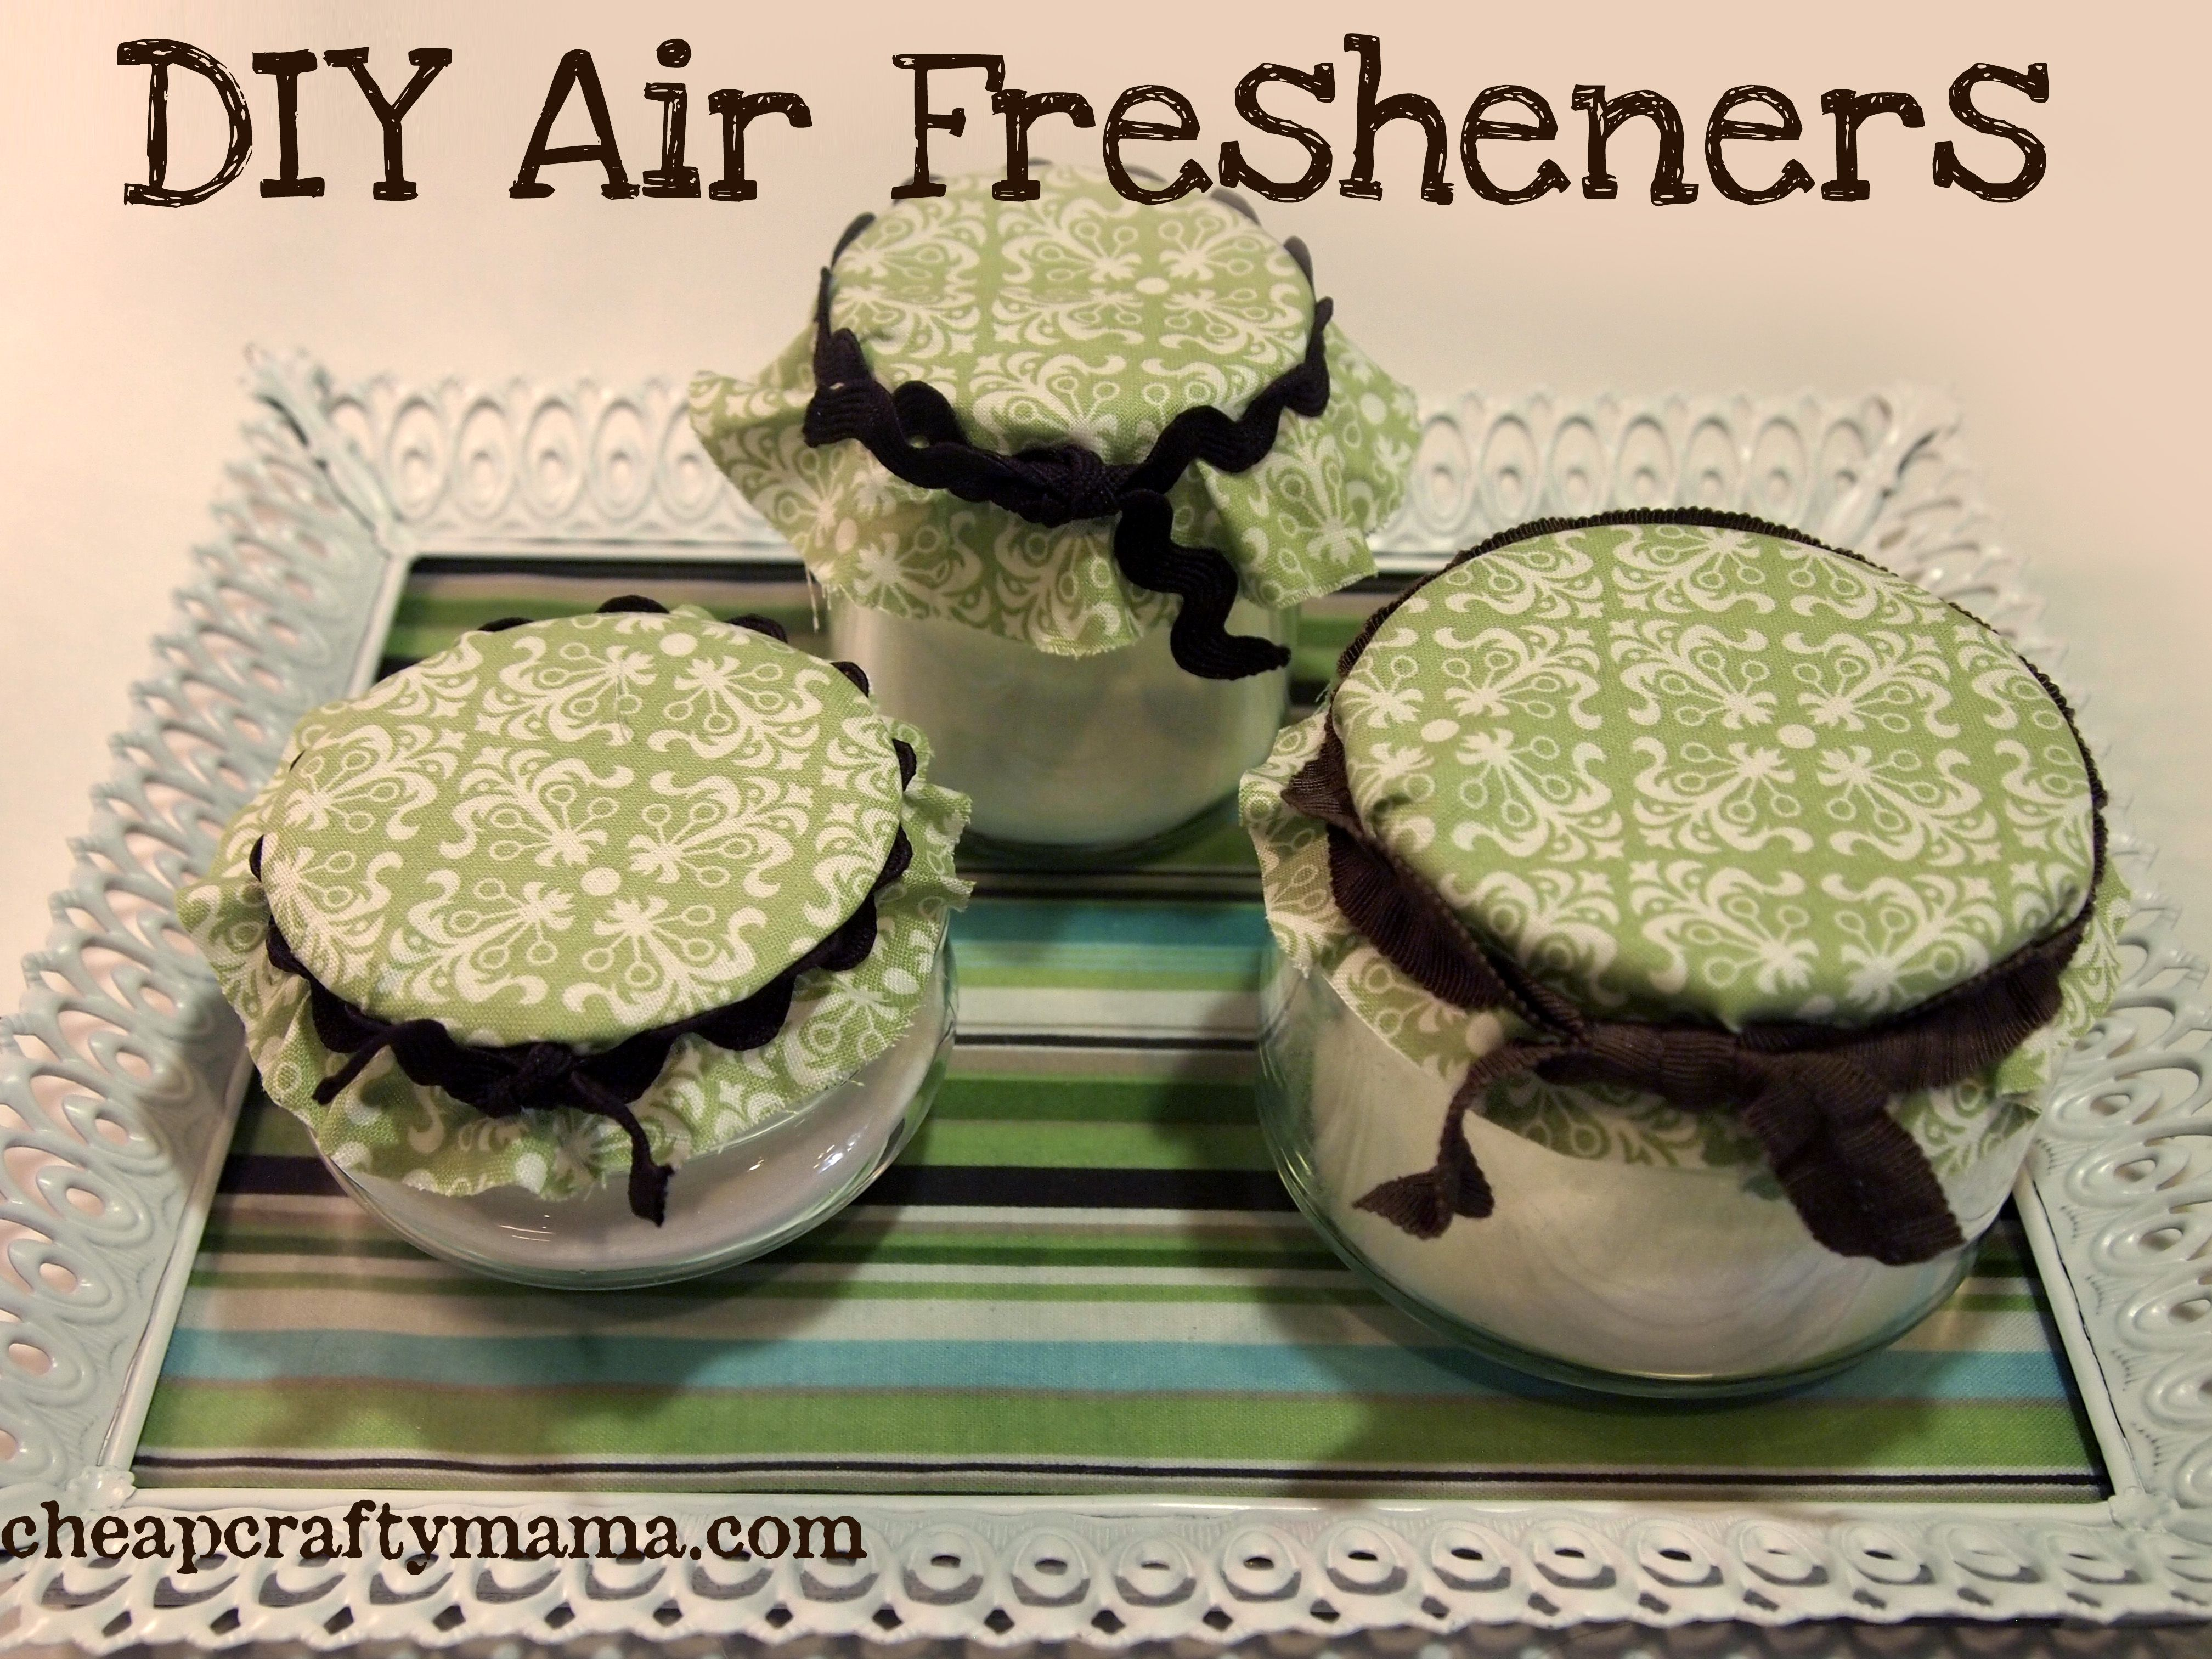 super easy diy air fresheners from cheap crafty mama for the home diy sachen geschenkideen. Black Bedroom Furniture Sets. Home Design Ideas